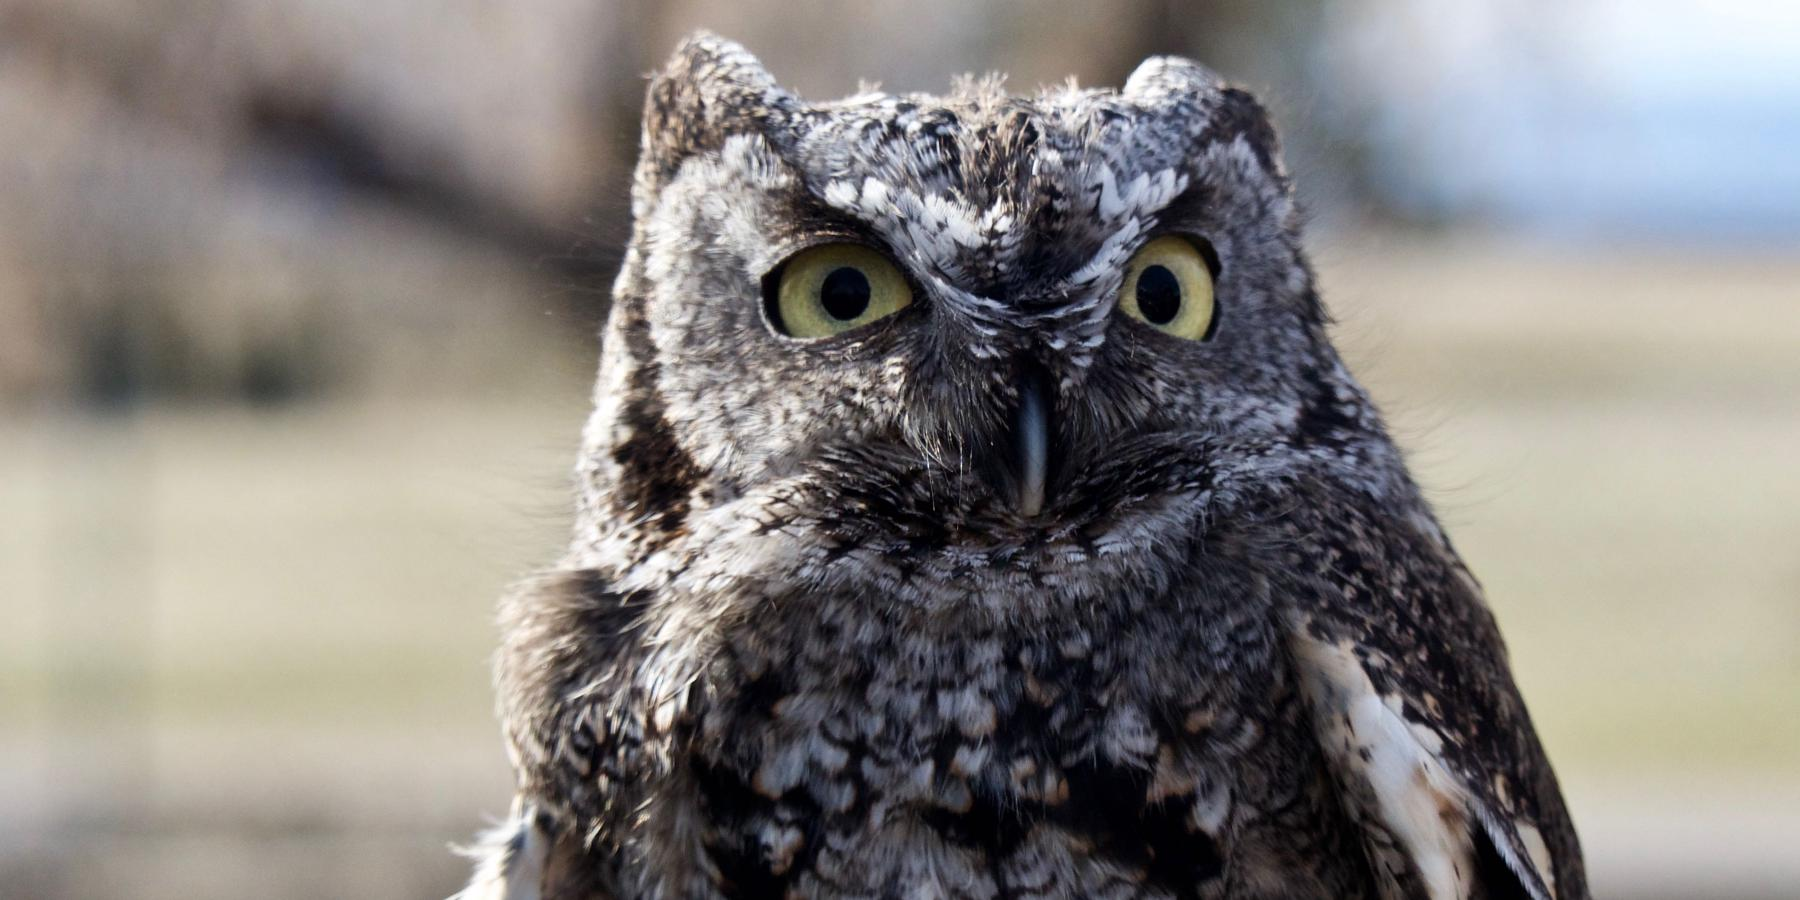 A close-up of a screech owl.